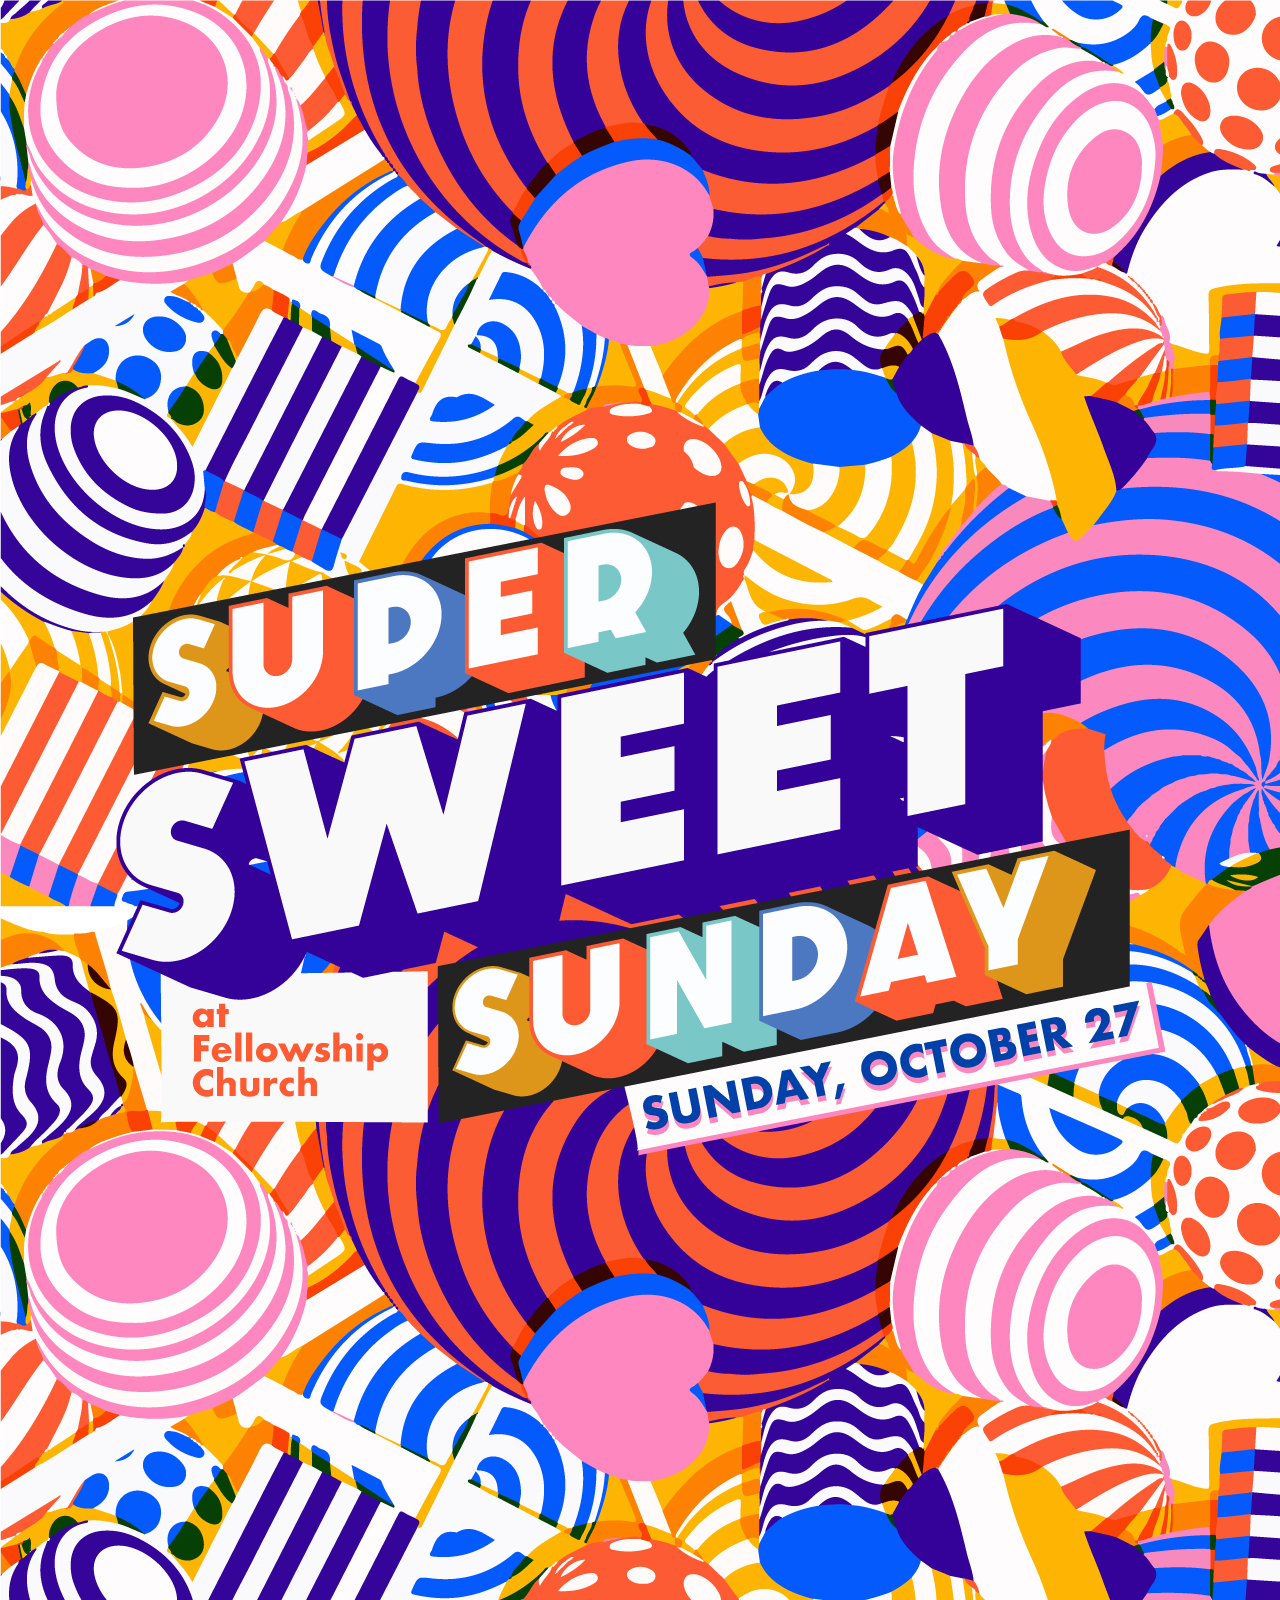 Super Sweet Sunday